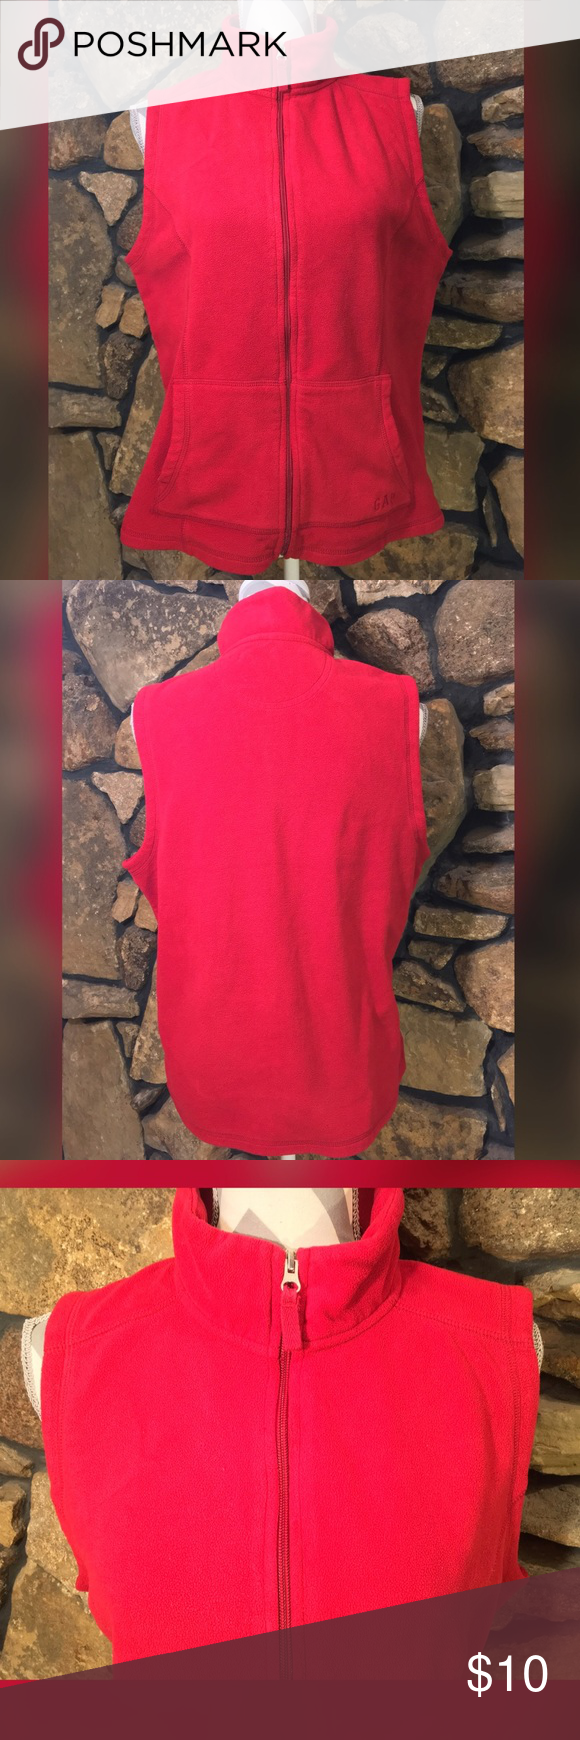 """GAP FLEECE VEST Gap Zip Fleece Vest Excellent Used Condition Red color 100% Polyester Total Length: 25"""" (see measurement guide) Sleeve Length: 0"""" (see measurement guide) Women's Size: Large Full Zip, Semi-Fitted/Relaxed Fit #10007 GAP Jackets & Coats Vests"""